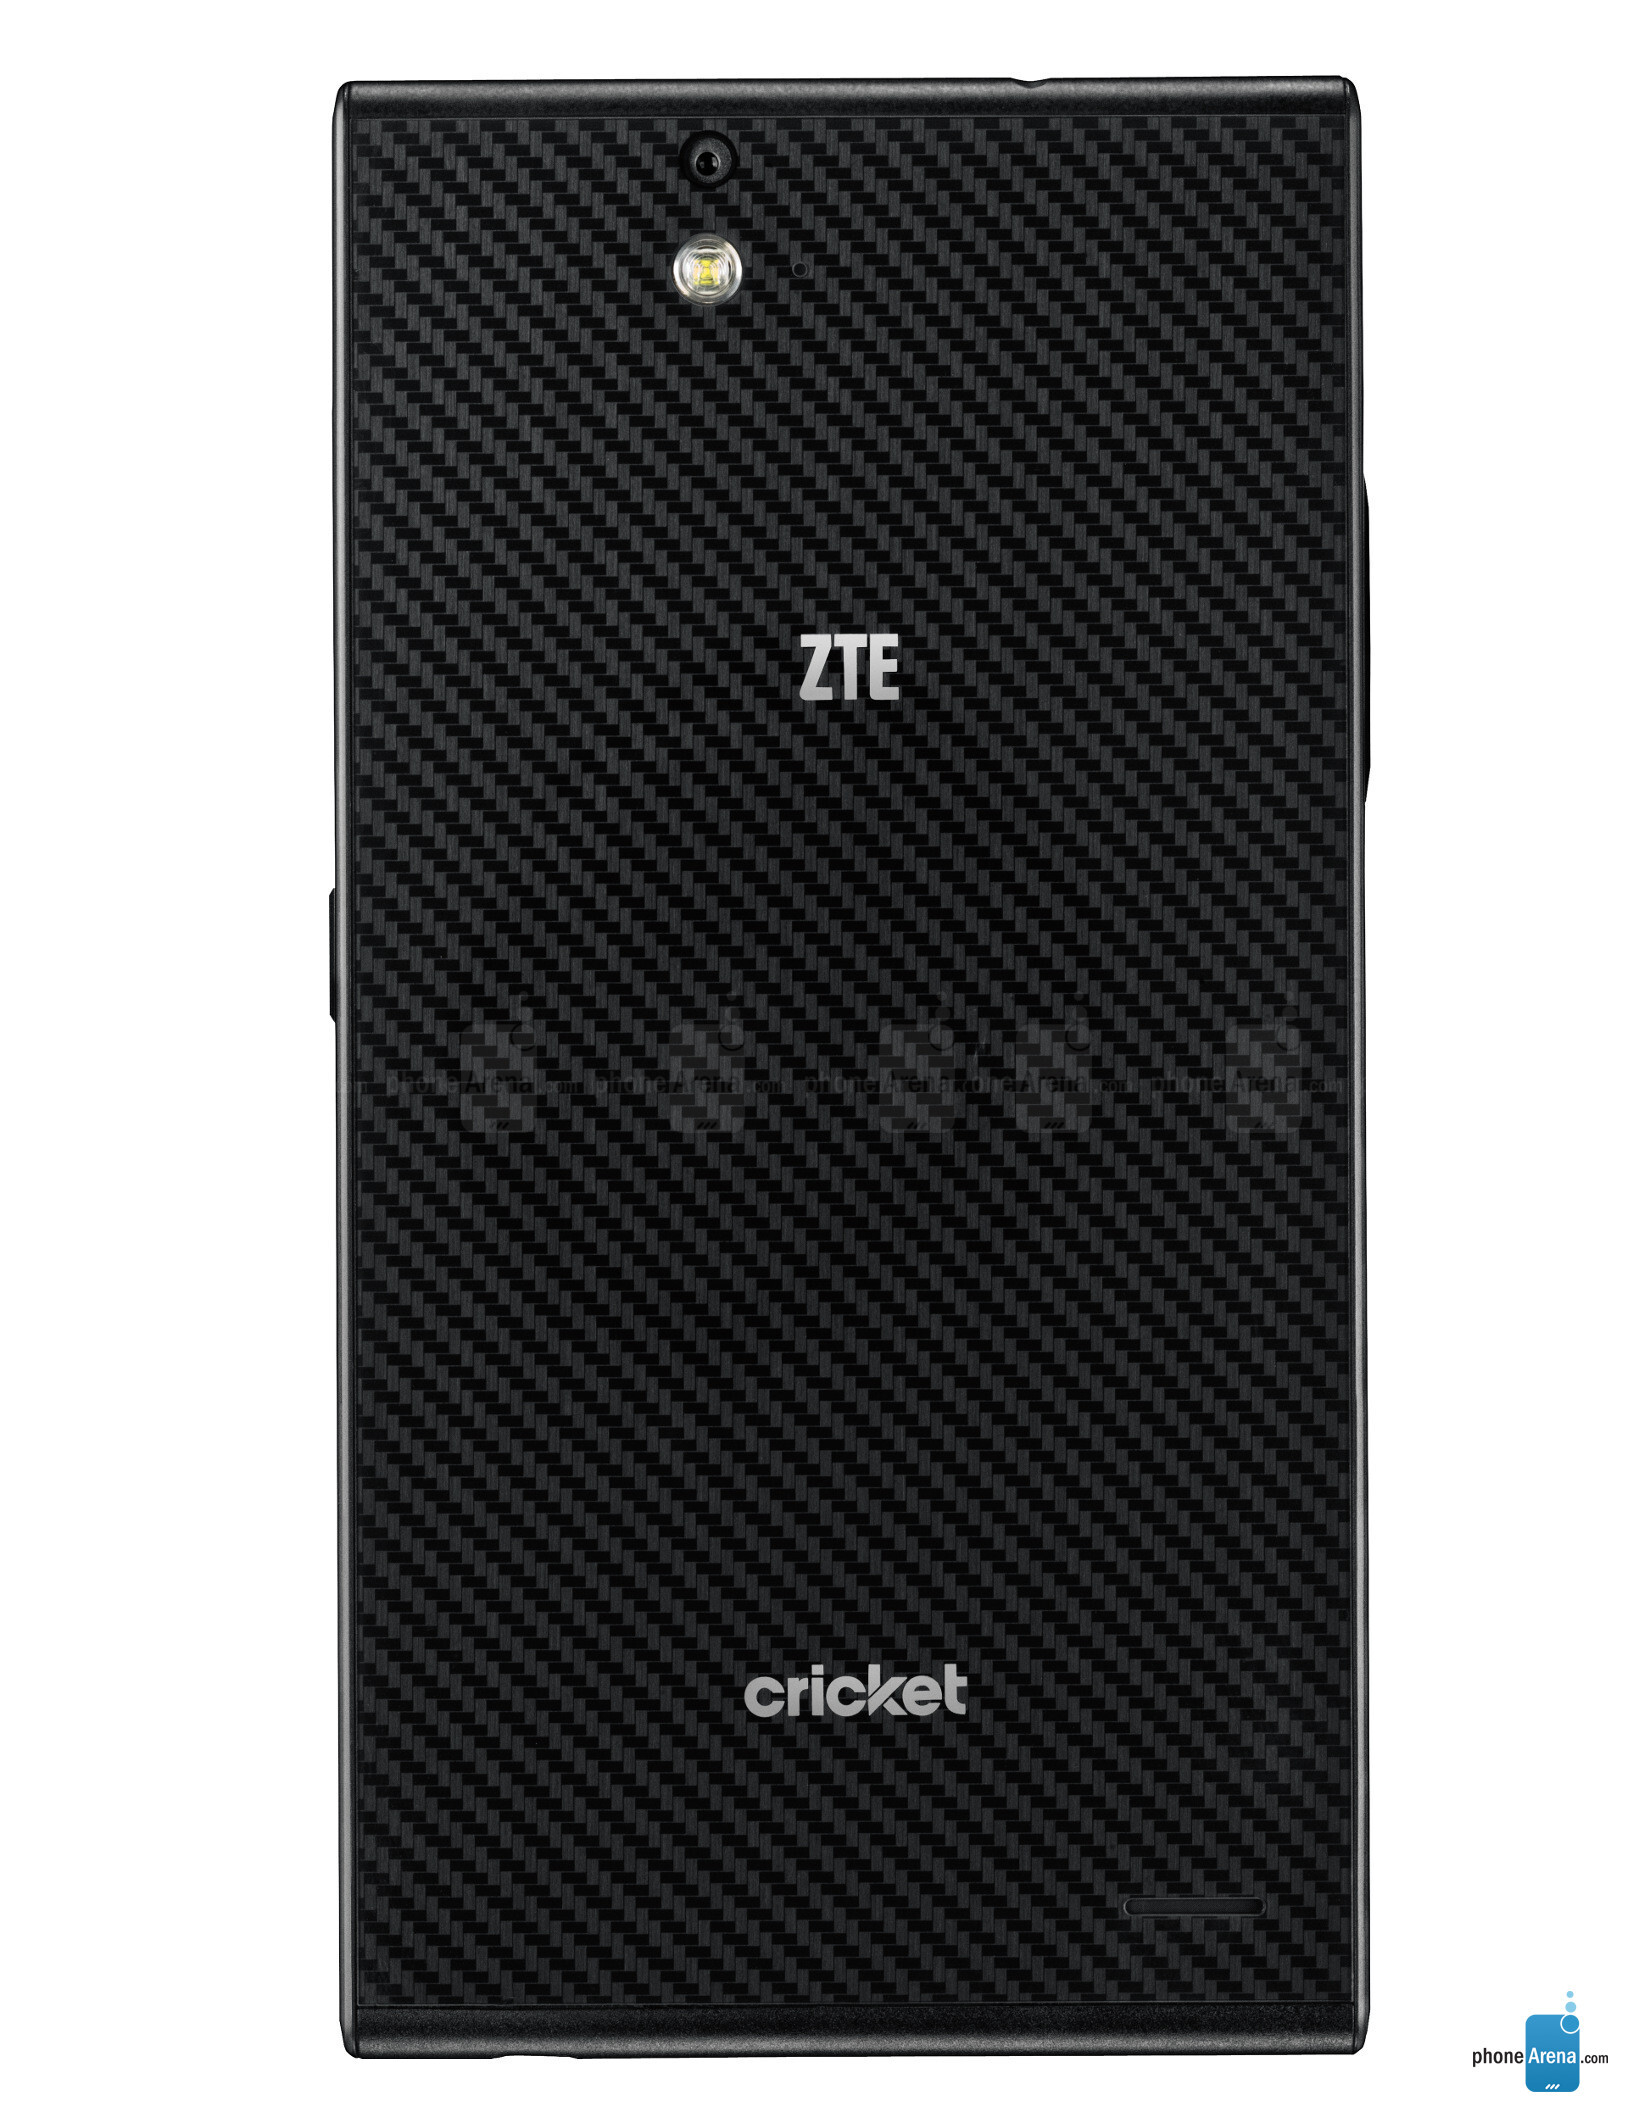 zte grand max manual not great once